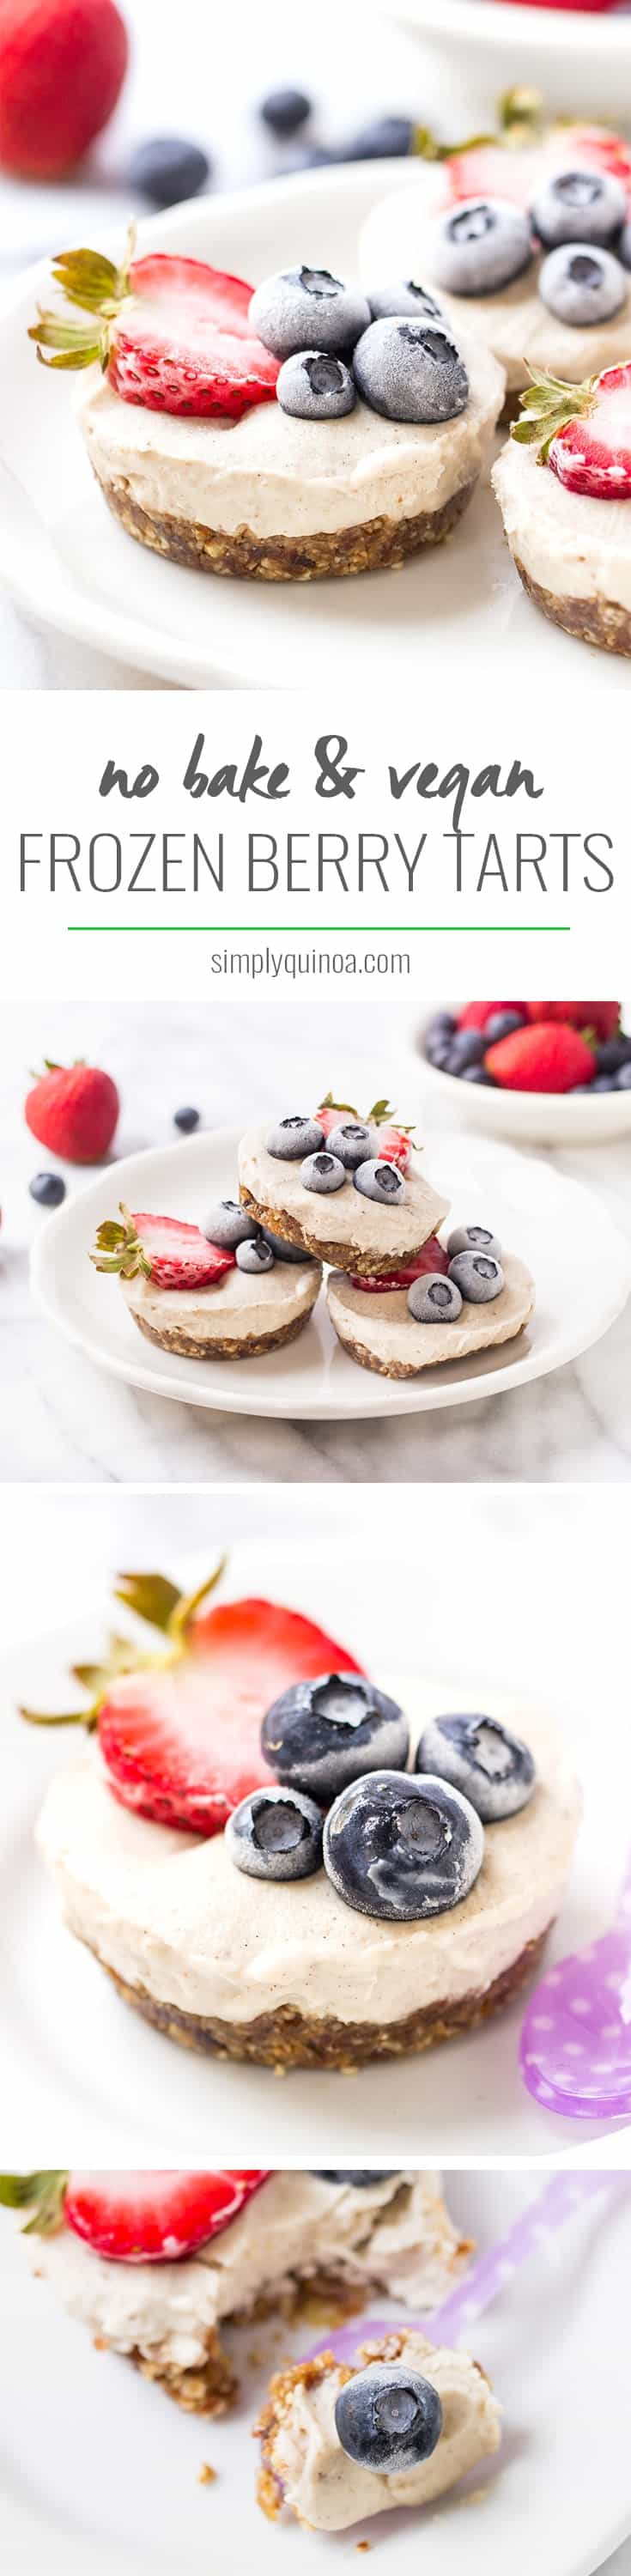 MINI VEGAN BERRY TARTS -- no-bake, healthy and they actually taste like an ice cream cake!